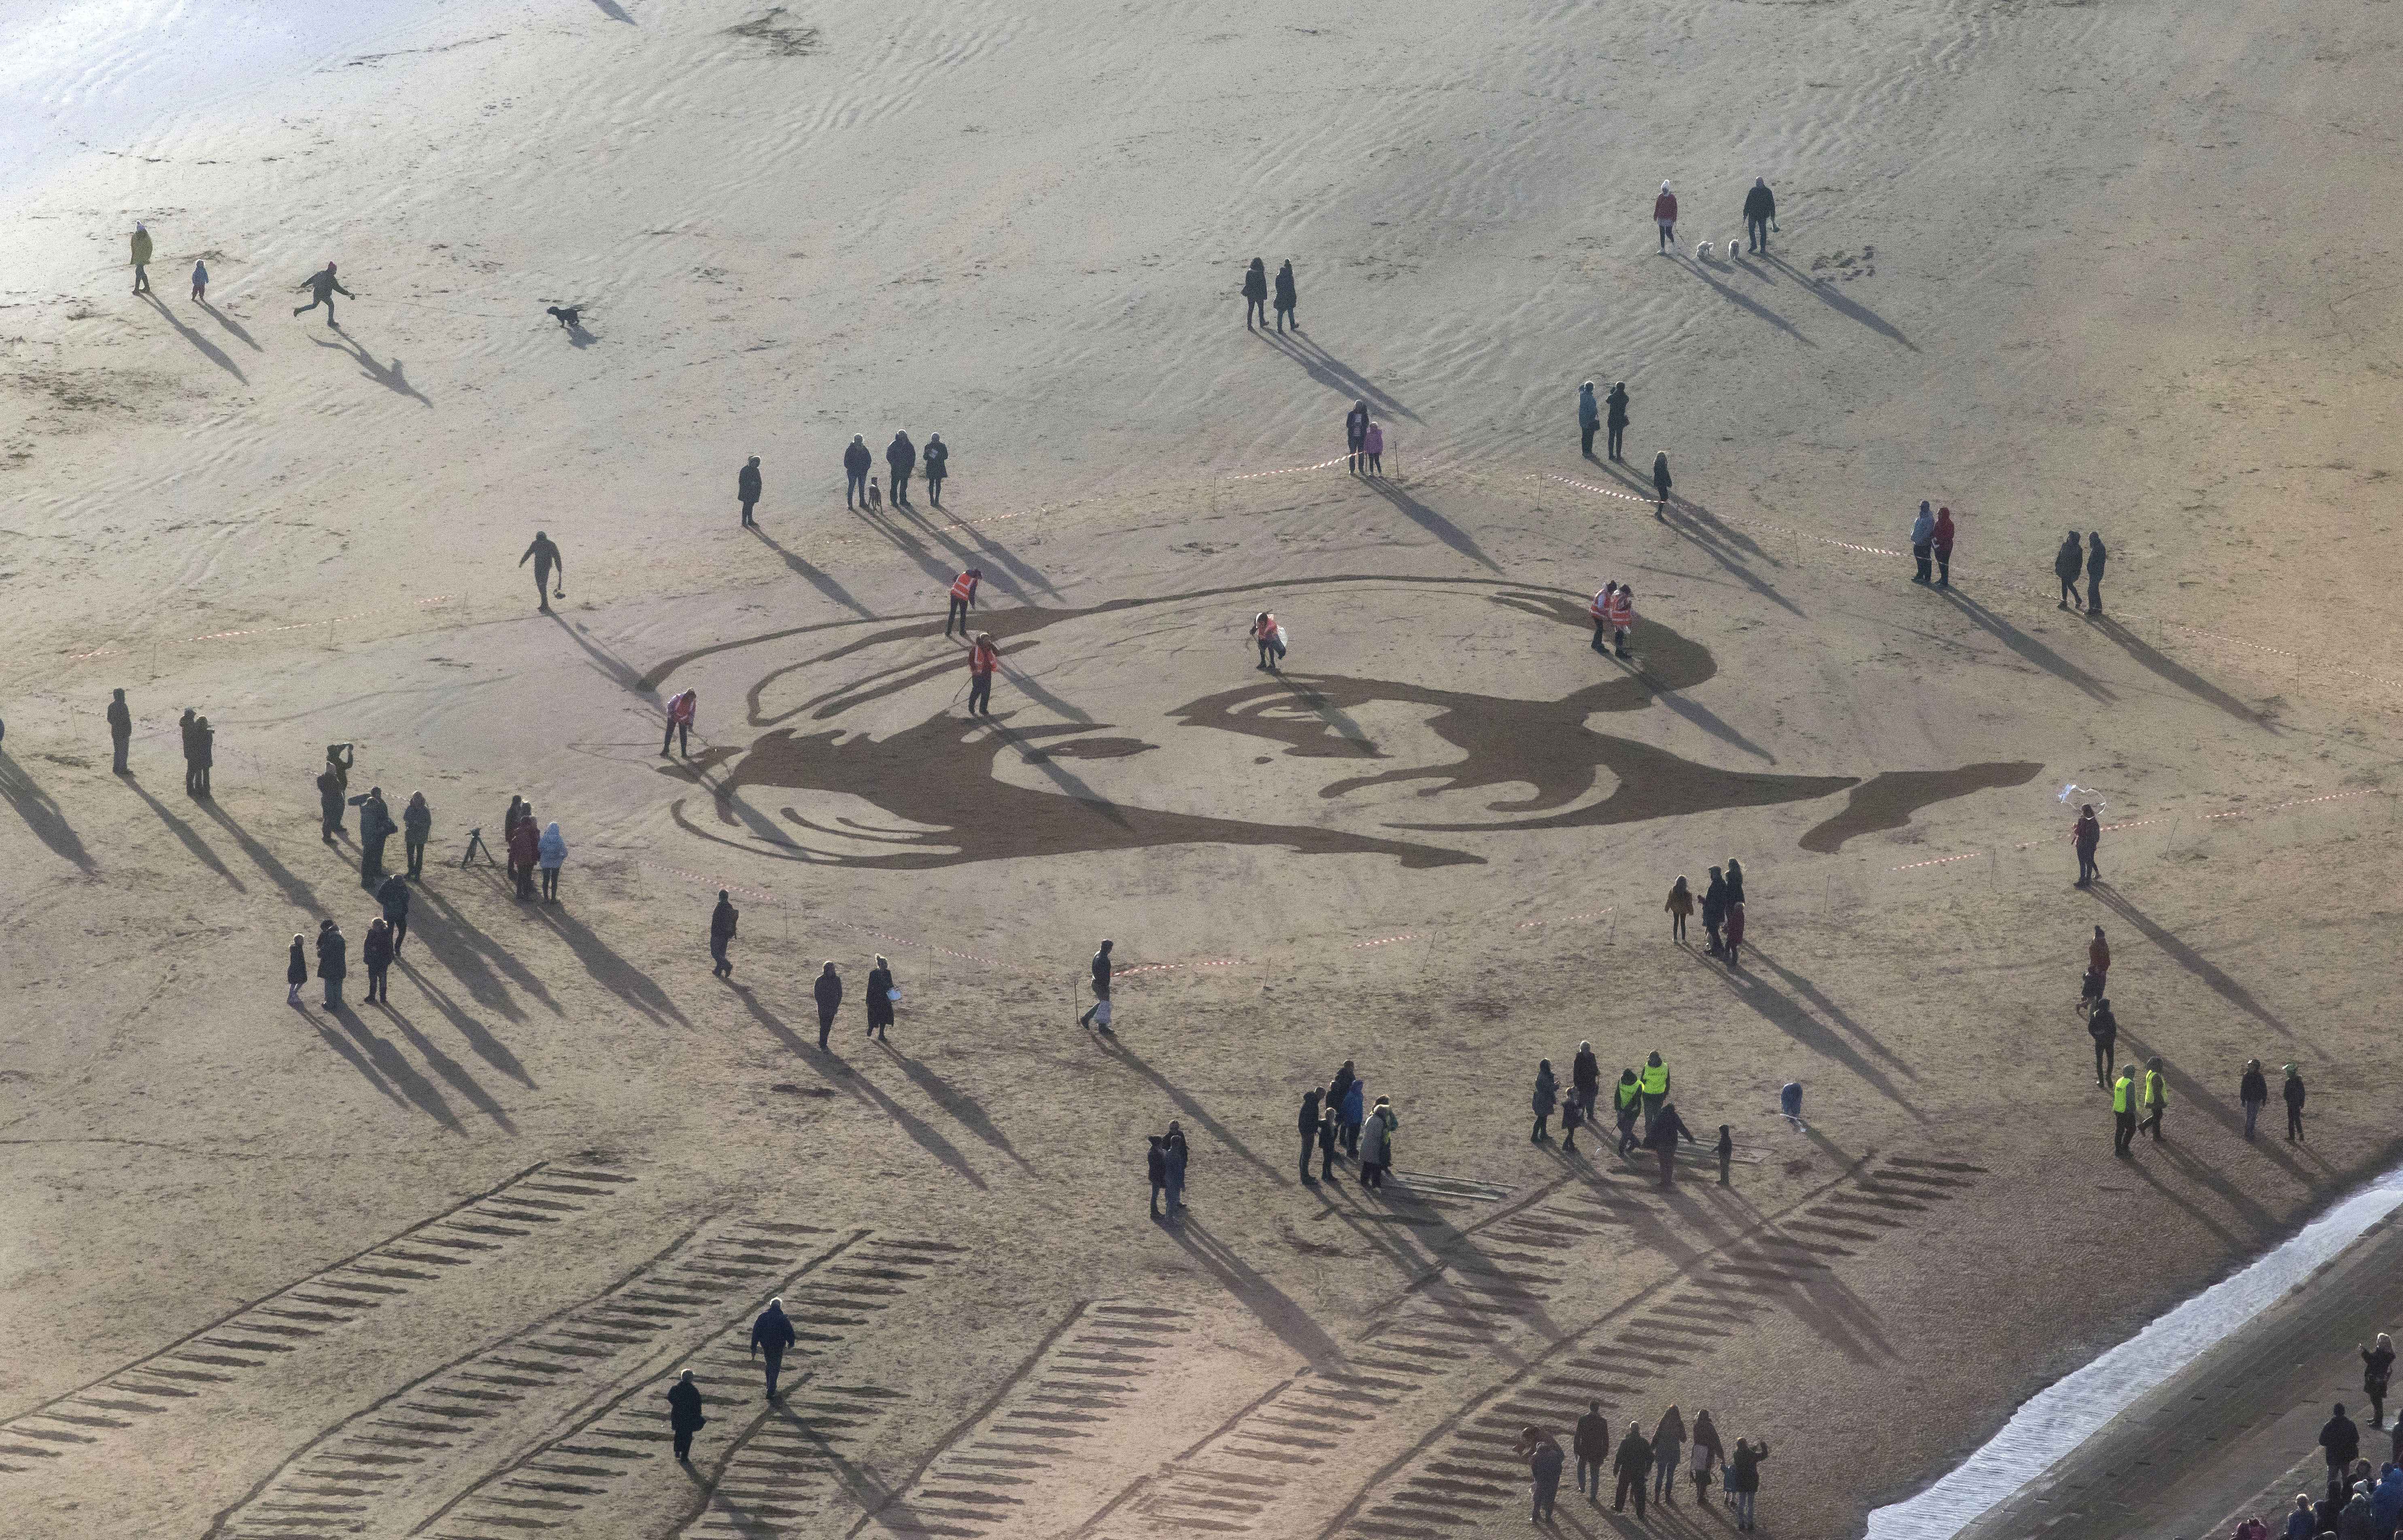 Members of the public gather on Swansea Bay Beach, Wales, for filmmaker Danny Boyle's Pages of the Sea, commissioned by 14-18 NOW to mark the centenary of Armistice Day on November 11, 2018 in Swansea, Wales.